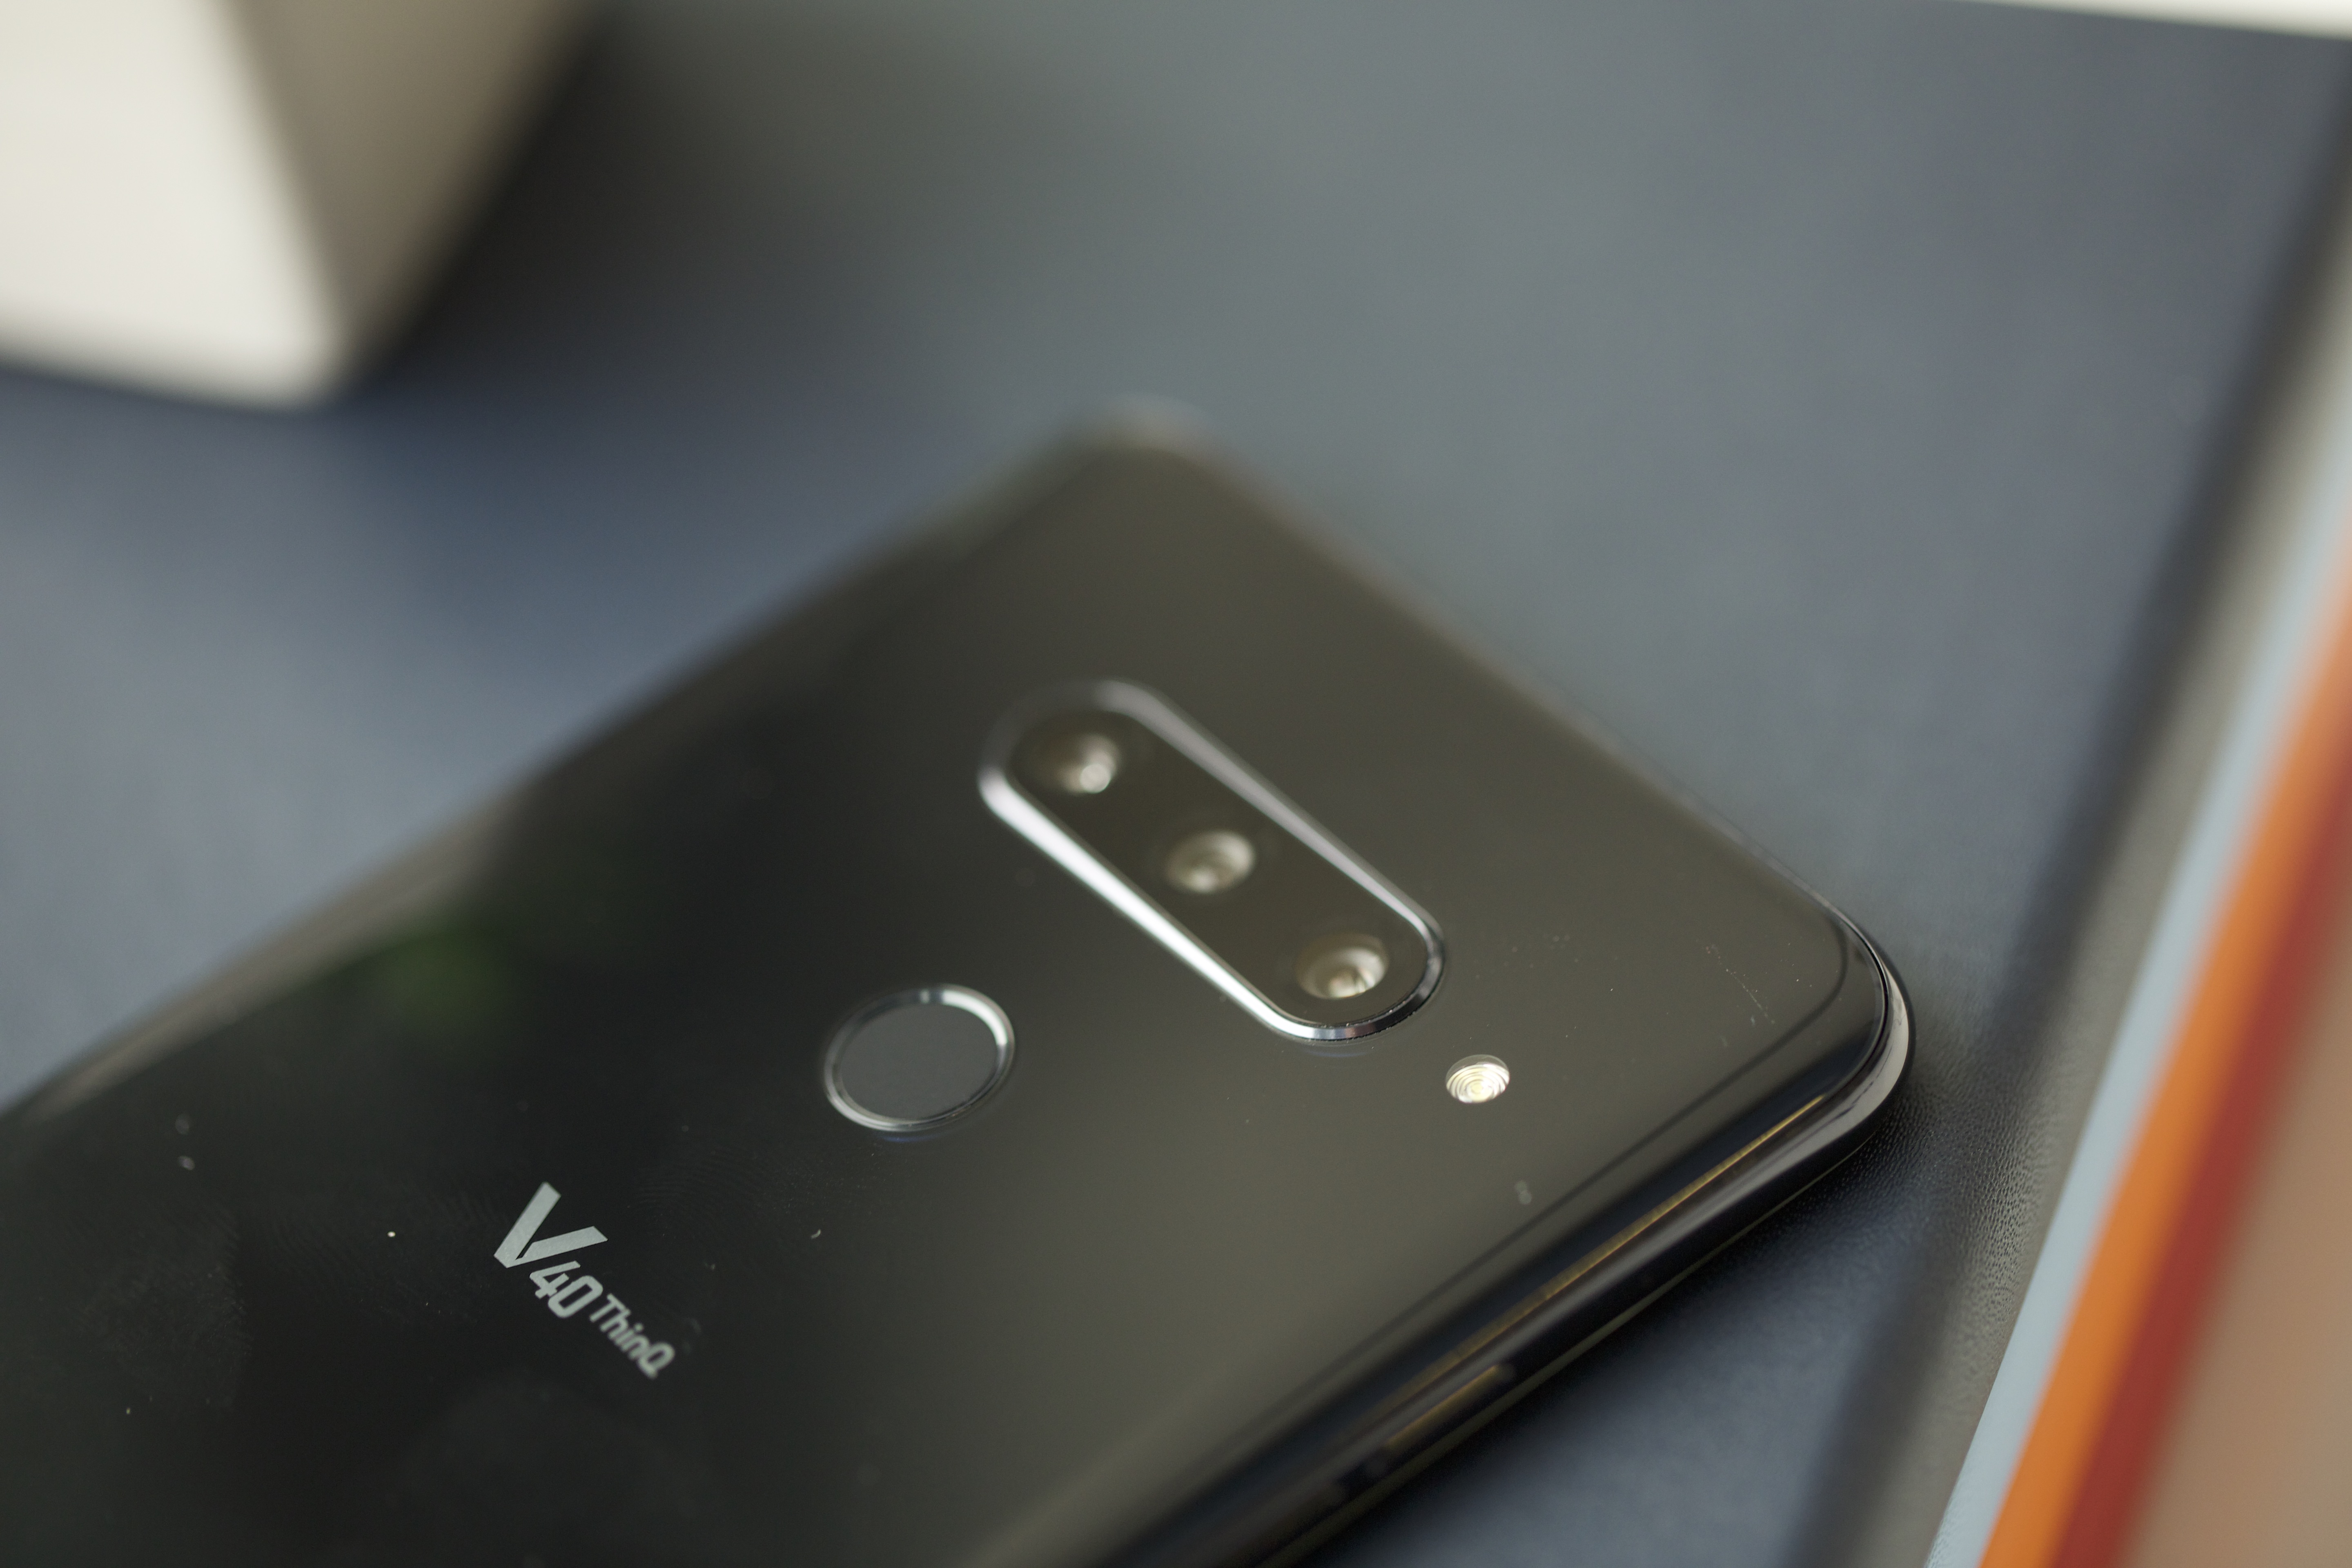 The top smartphone trends to watch in 2019 CMB 4110